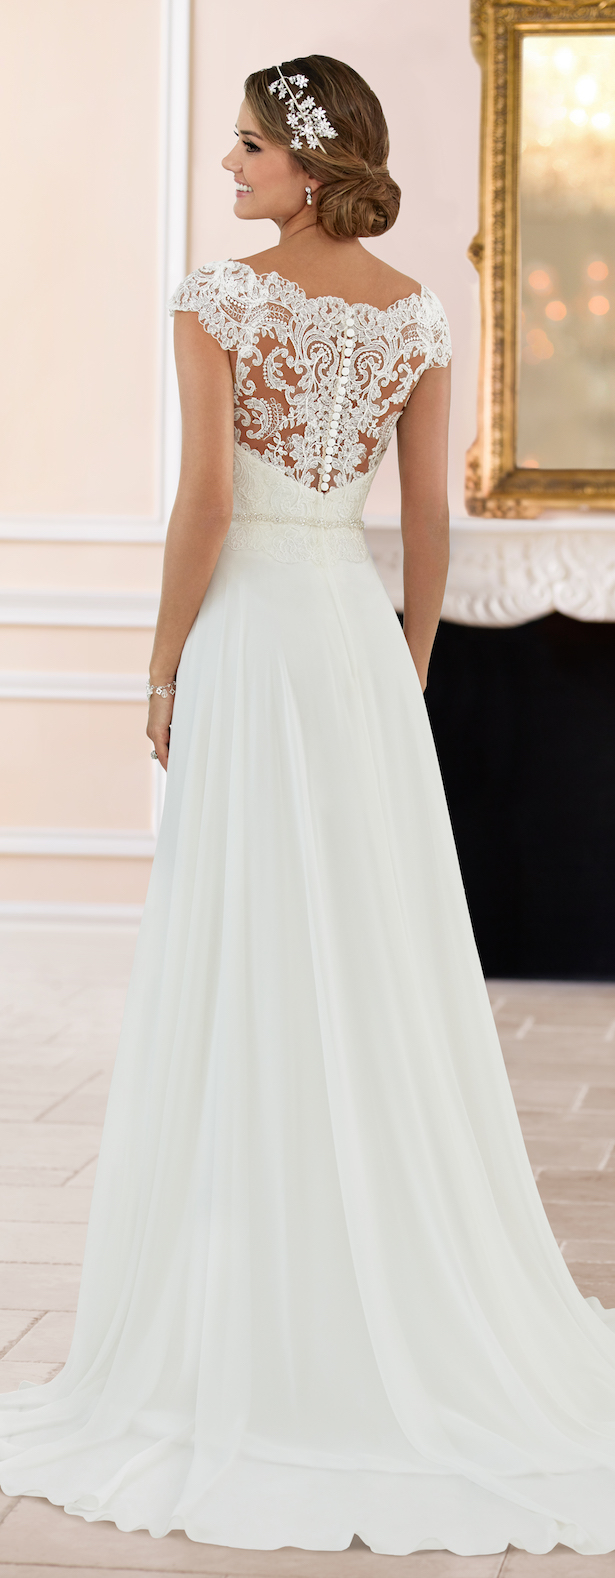 Wedding dresses in york wedding dresses in redlands for Wedding dress shops in syracuse ny